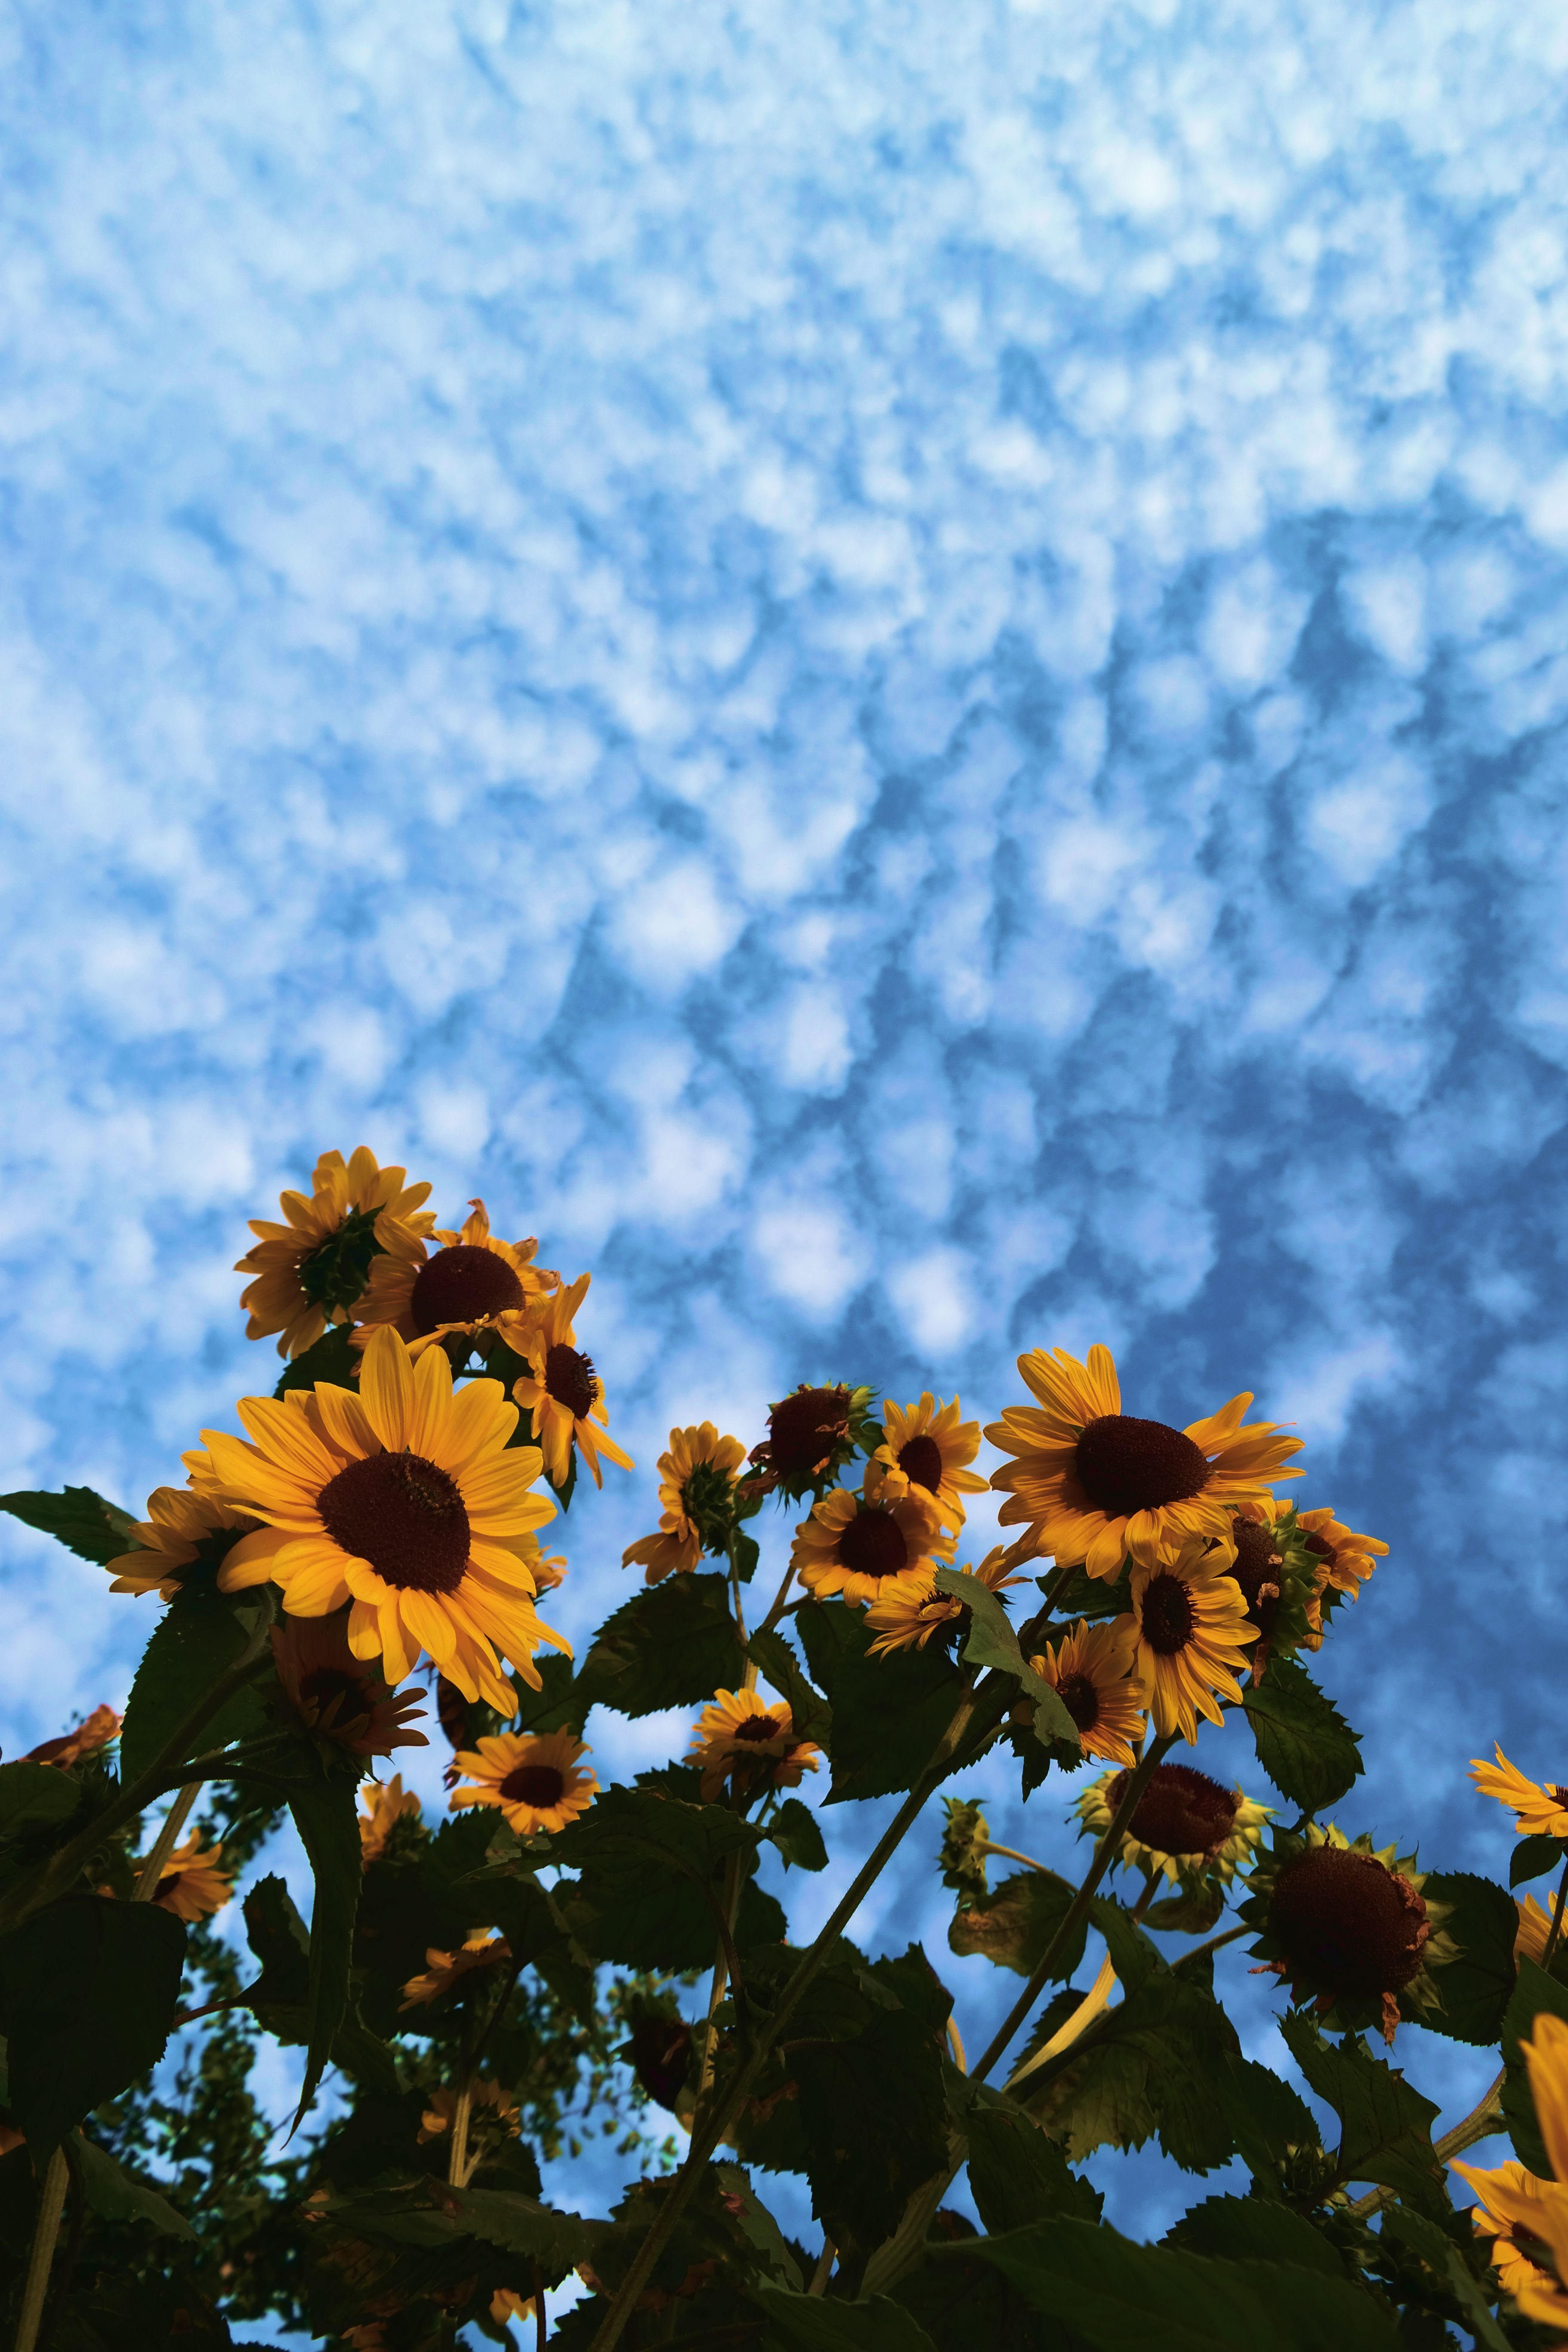 Sunflower Yellow Tumblr Aesthetic Wallpapers - Top Free ...